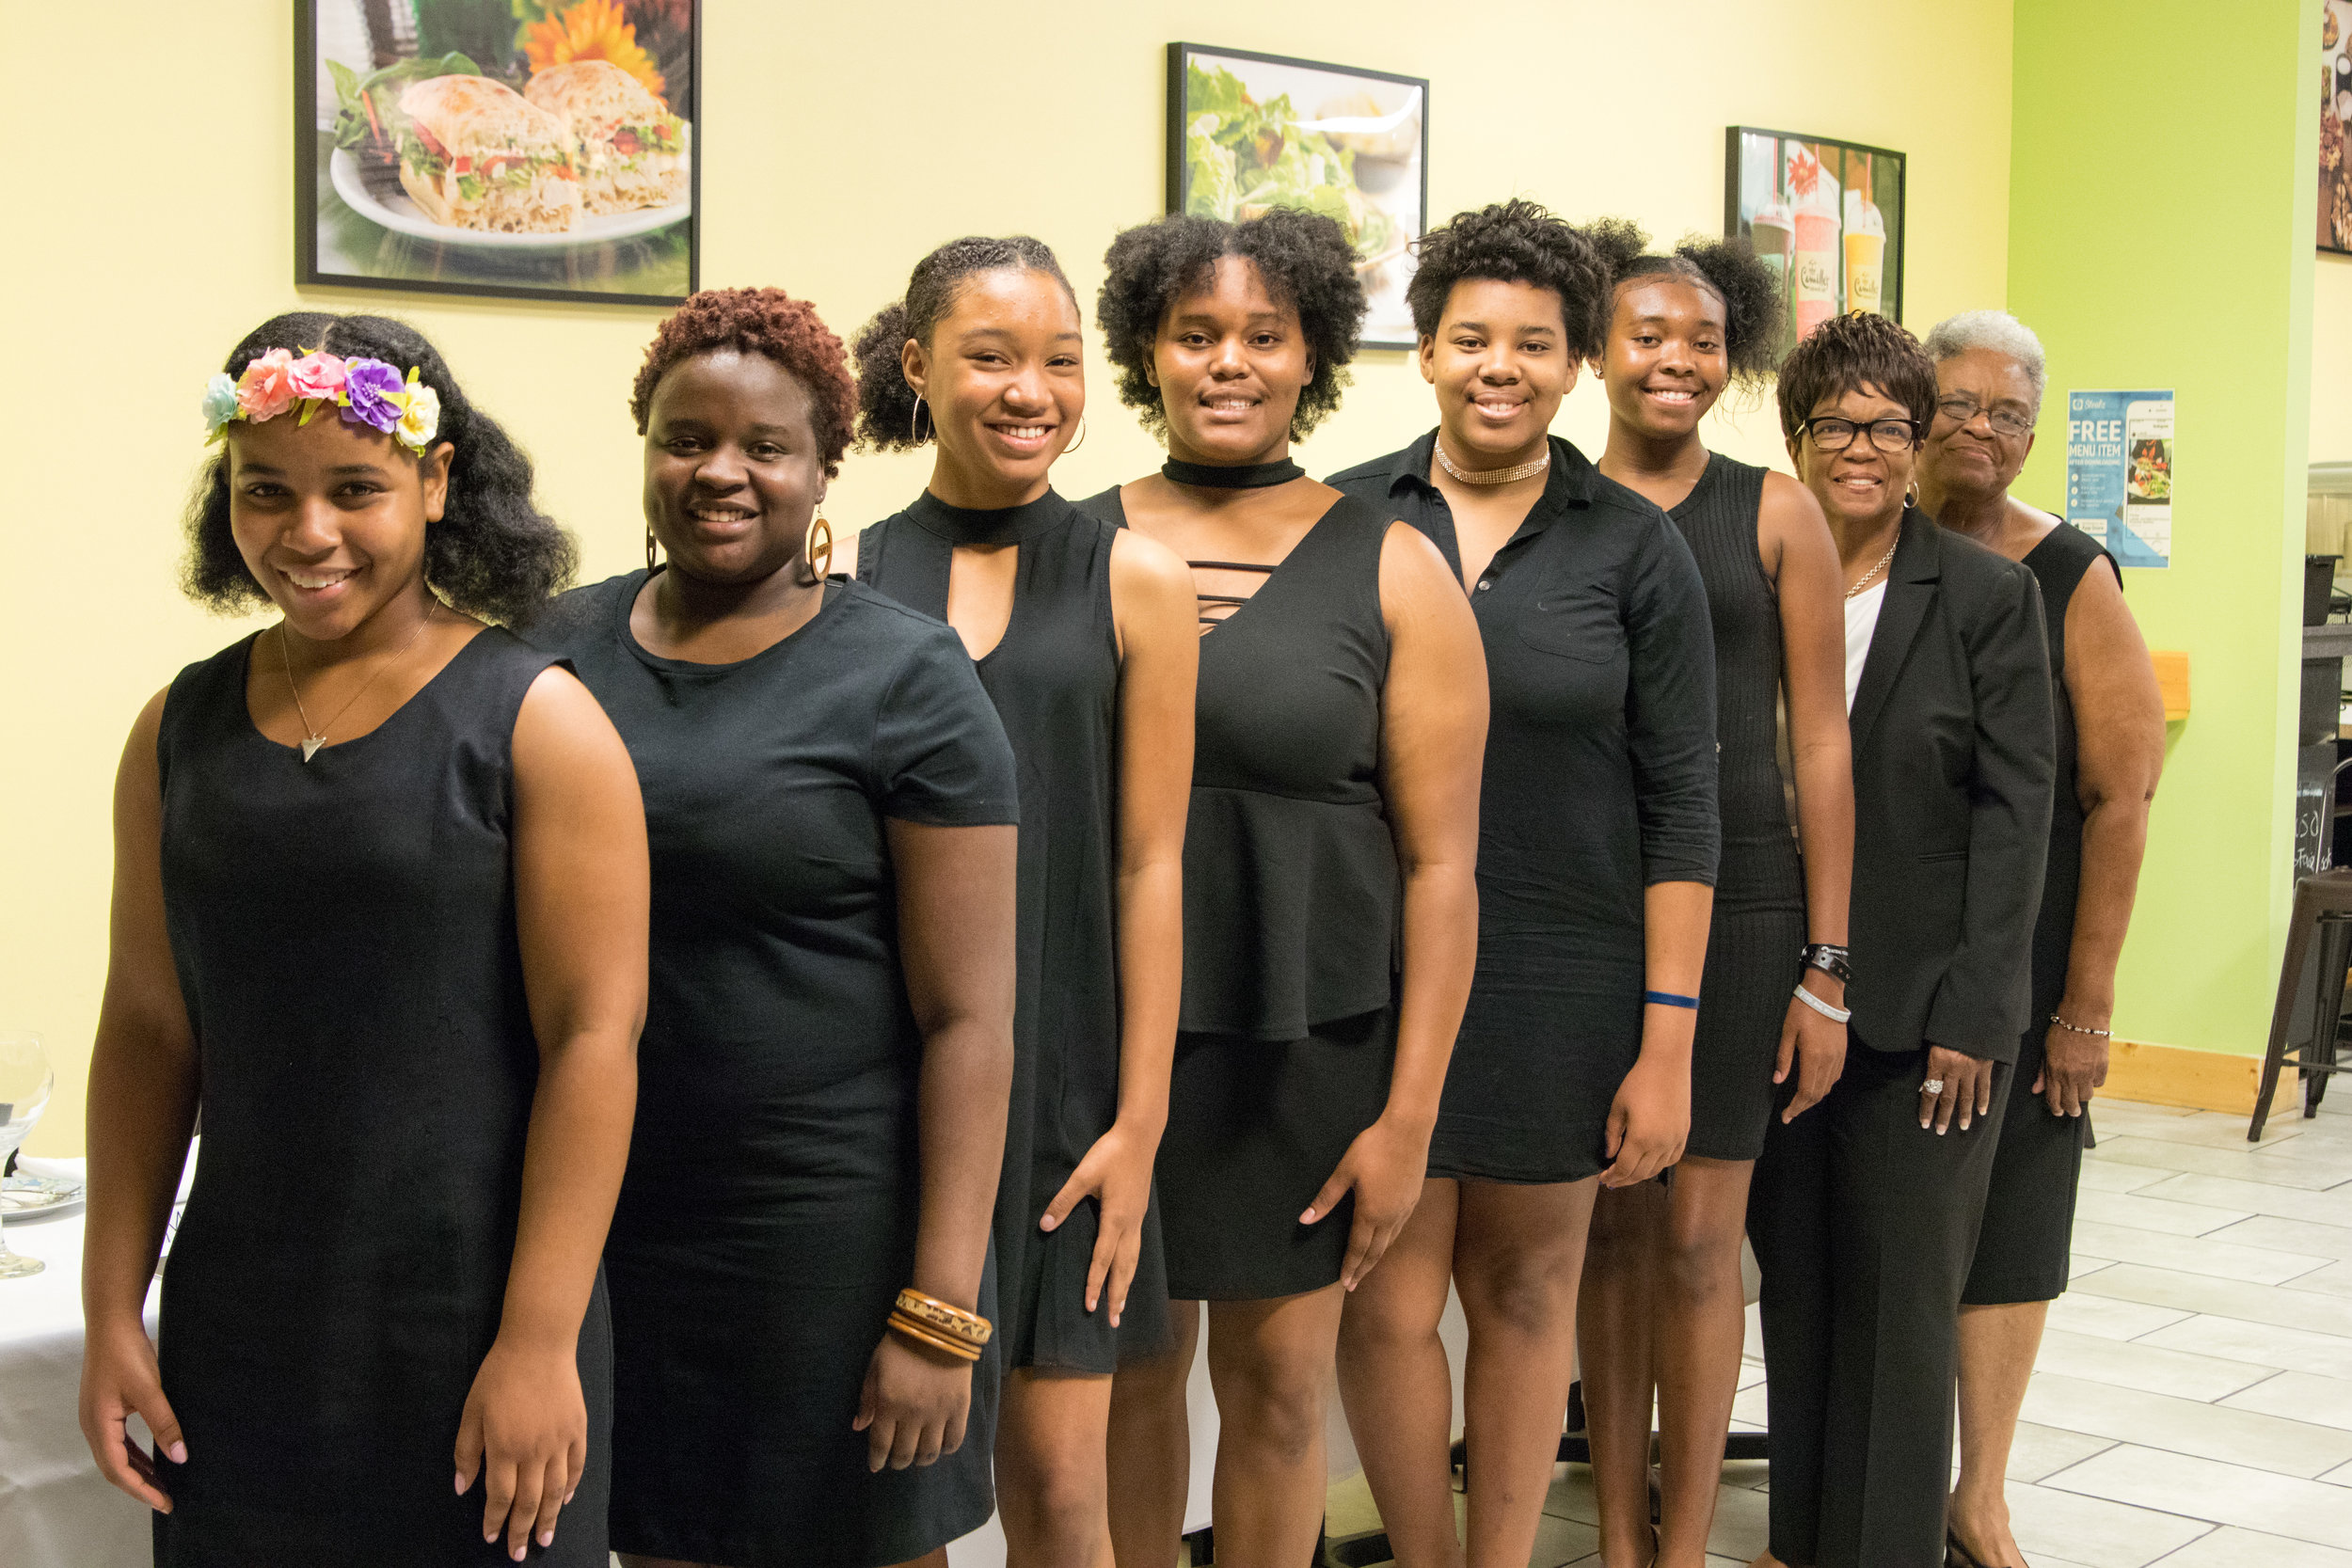 All Natural Pageant_Lavelle-9736.jpg